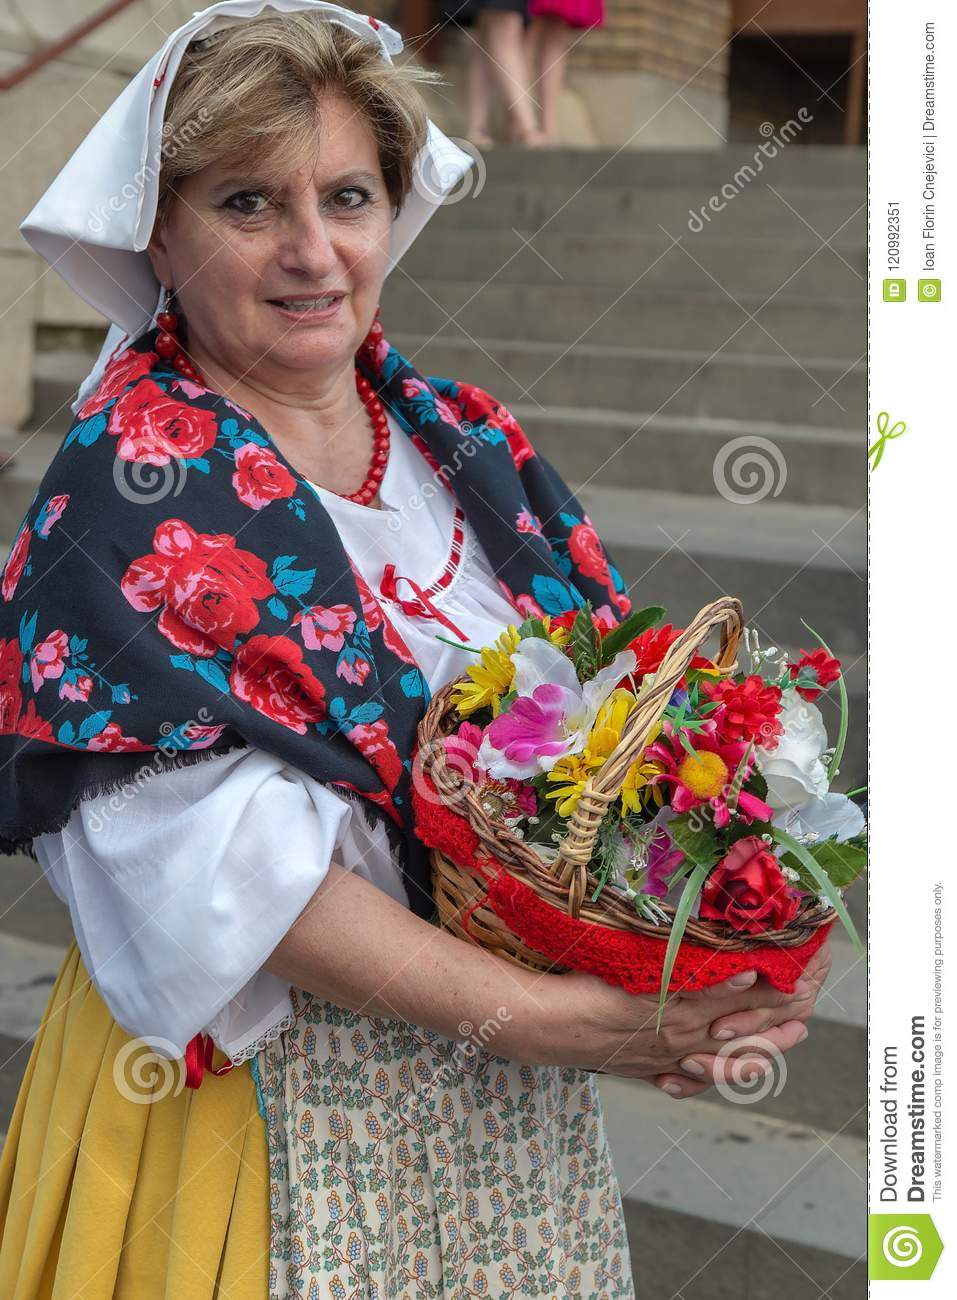 woman from italy